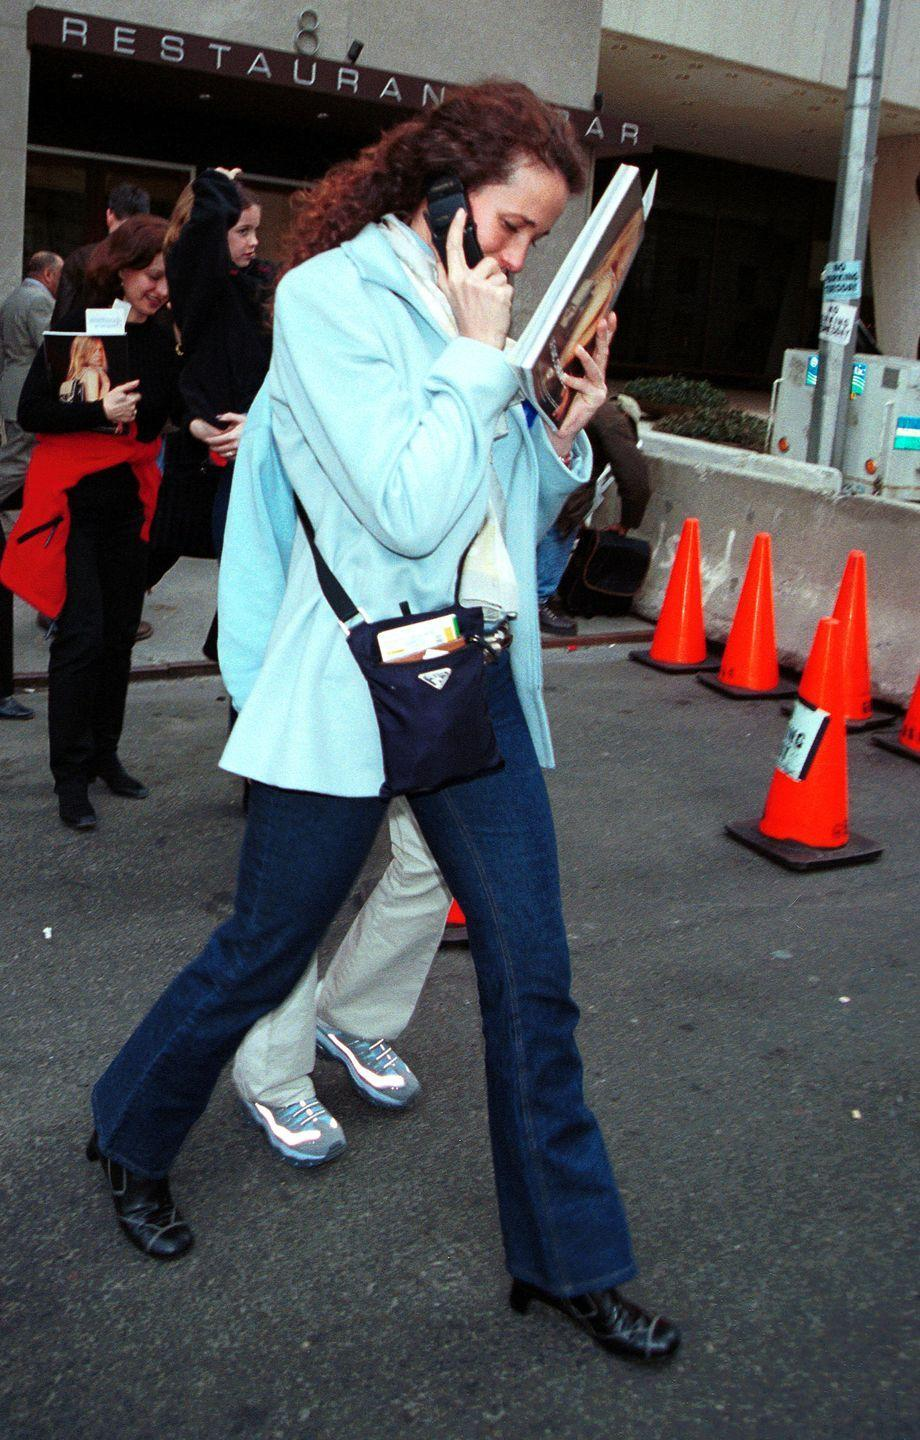 <p>I would like you congratulate you for getting through 18 photos of celebrities with old cell phones and I promise you there's a good one if you keep going.</p>